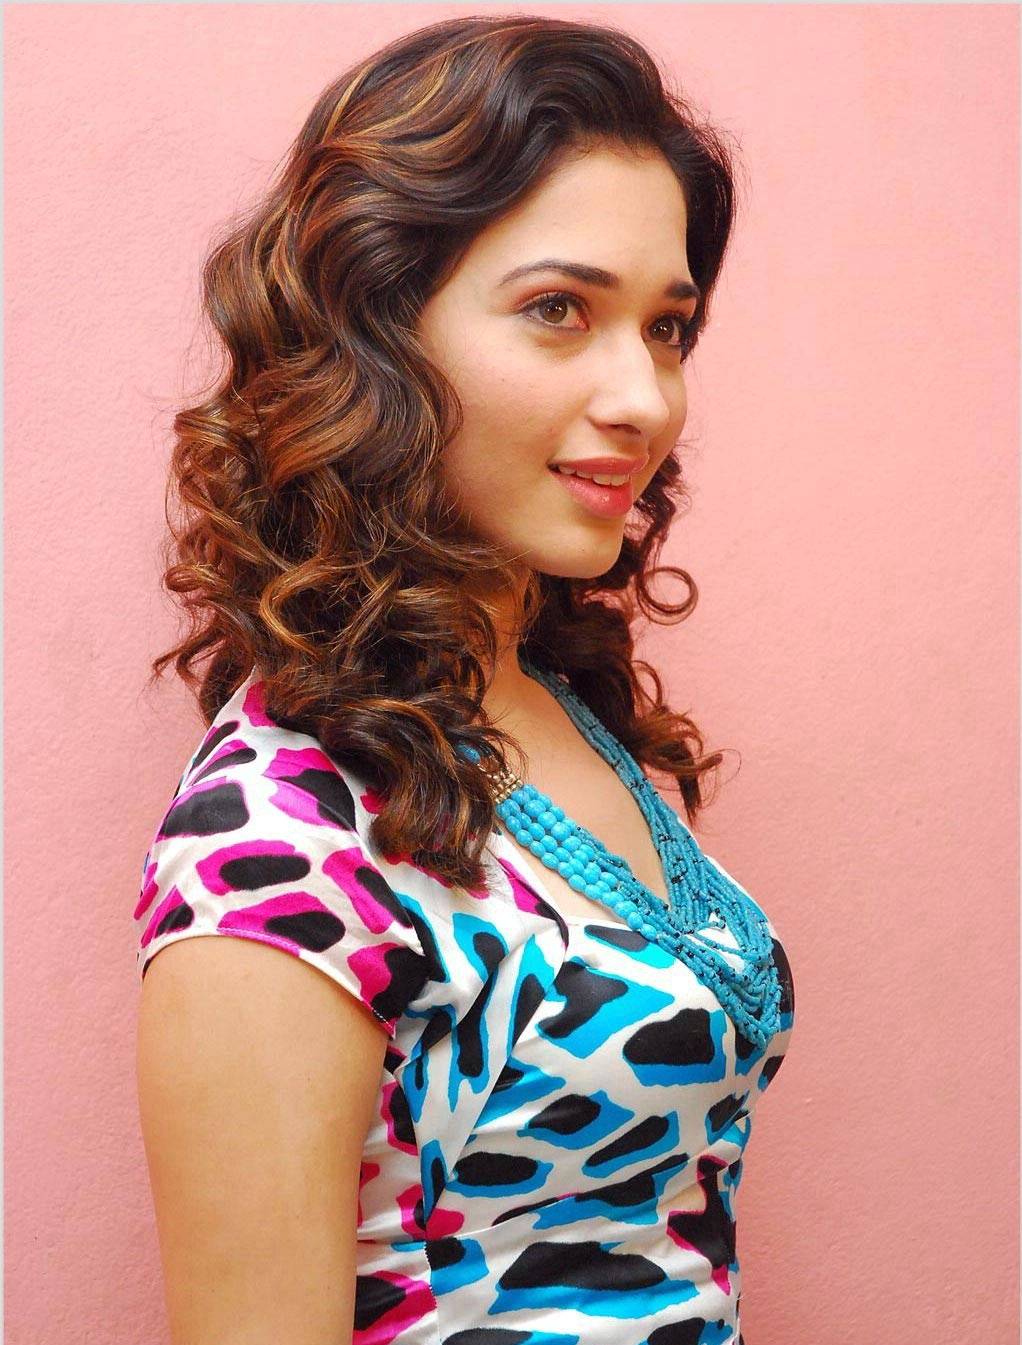 new arabian fashion: tamanna bhatia biography and images